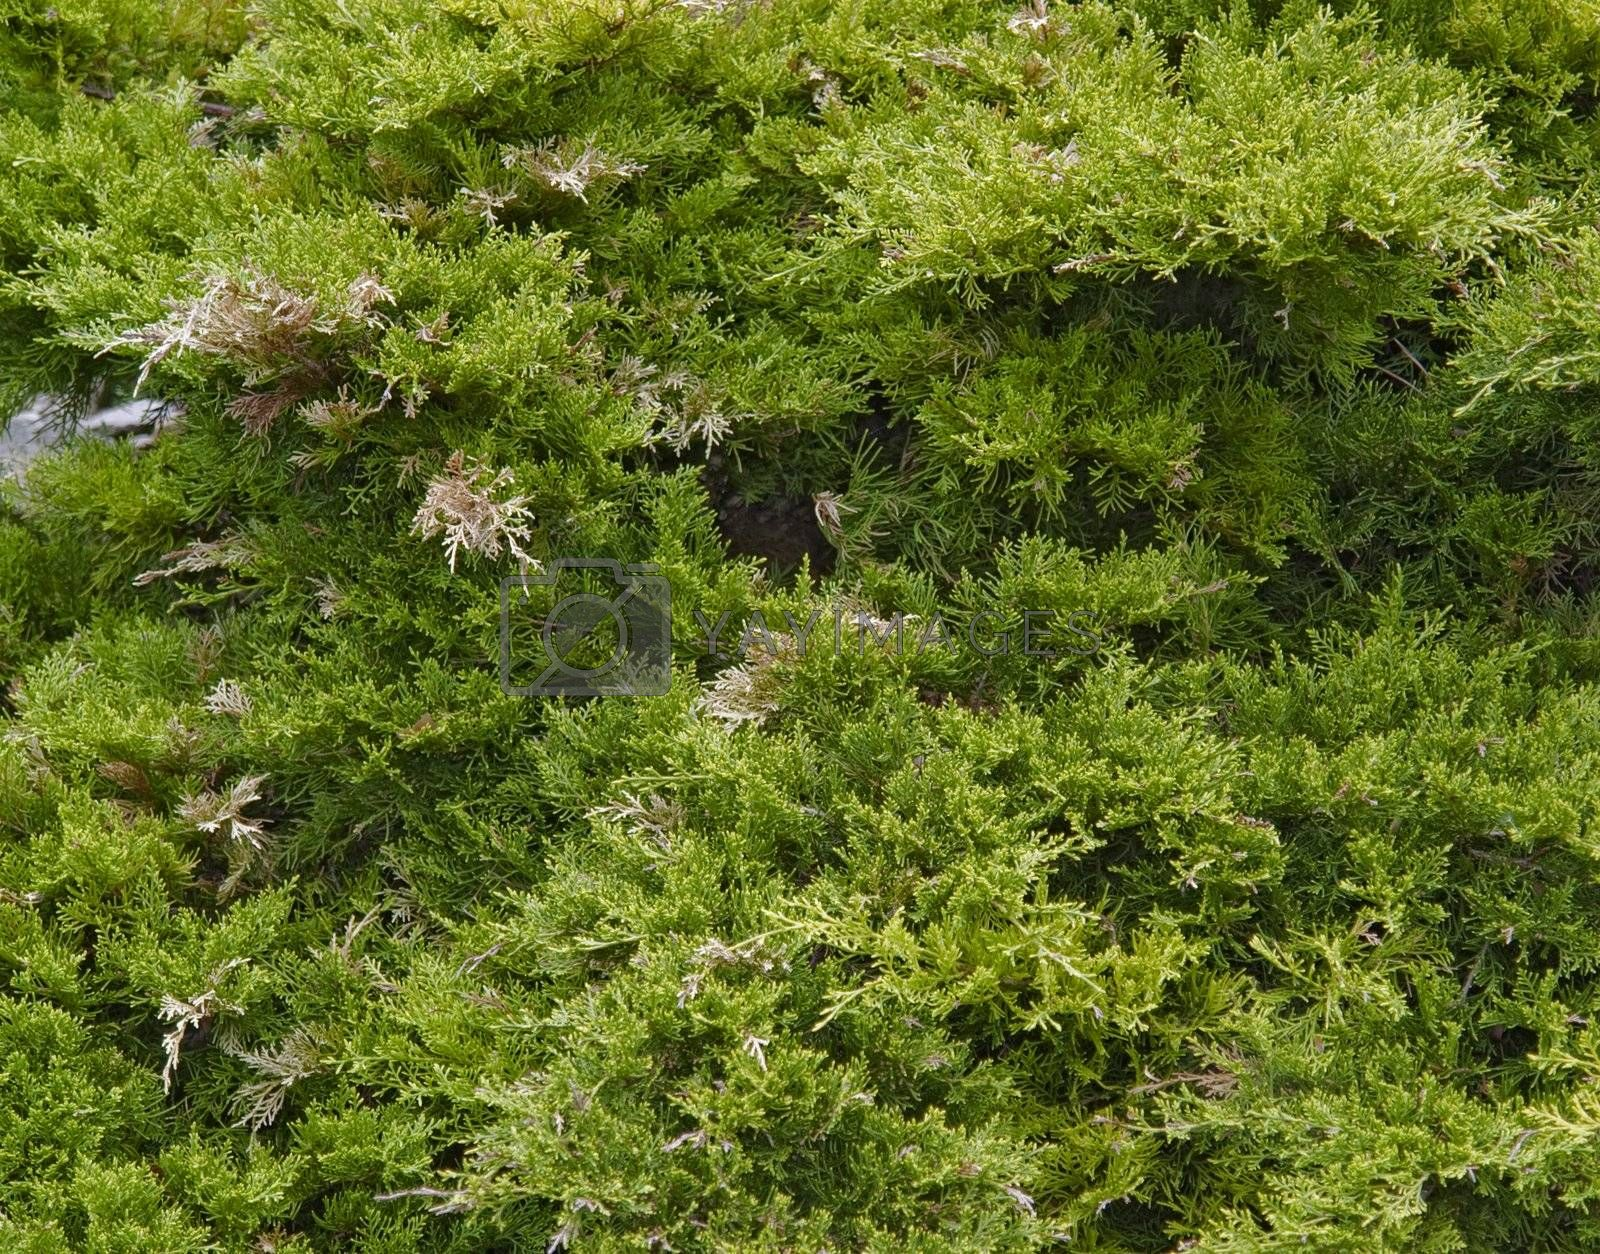 full frame natural background showing thuja foliage